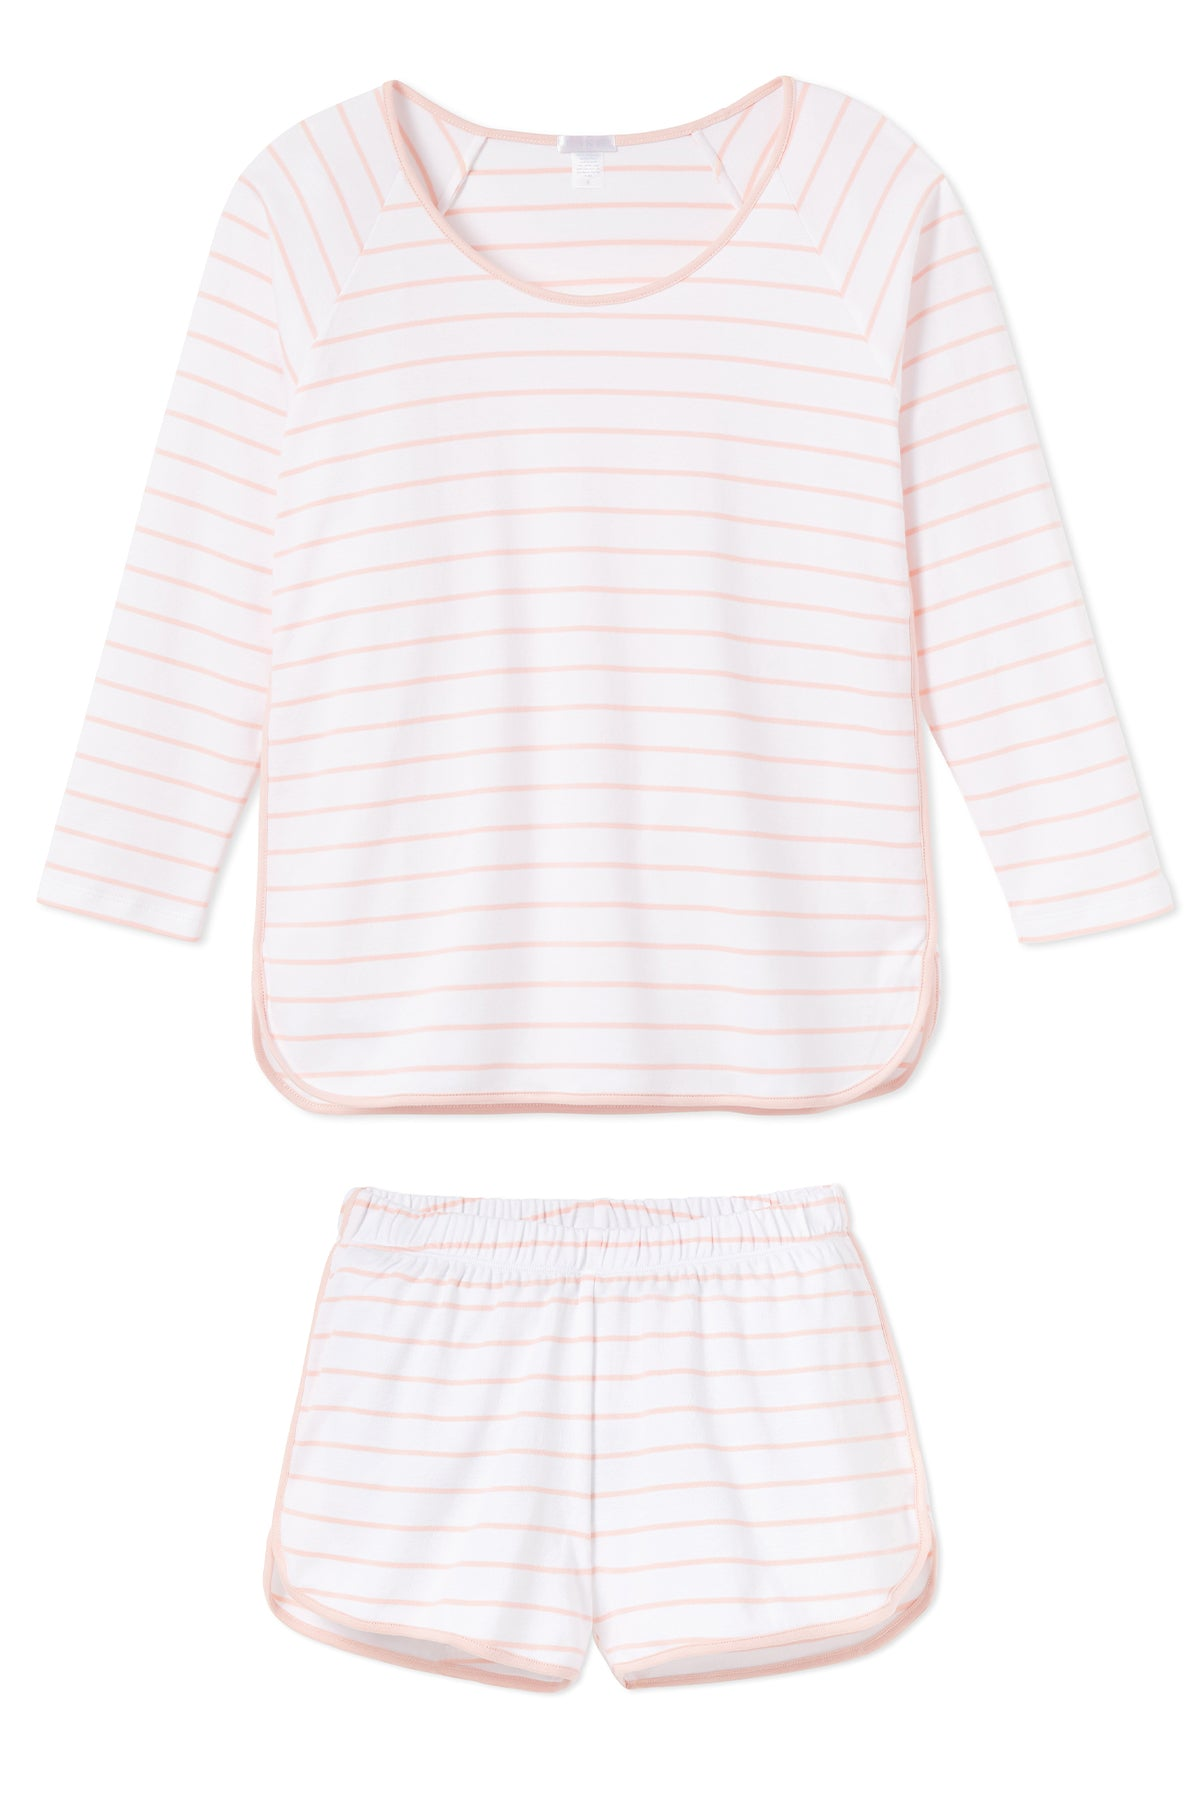 Pima Long-Short Set in Peach